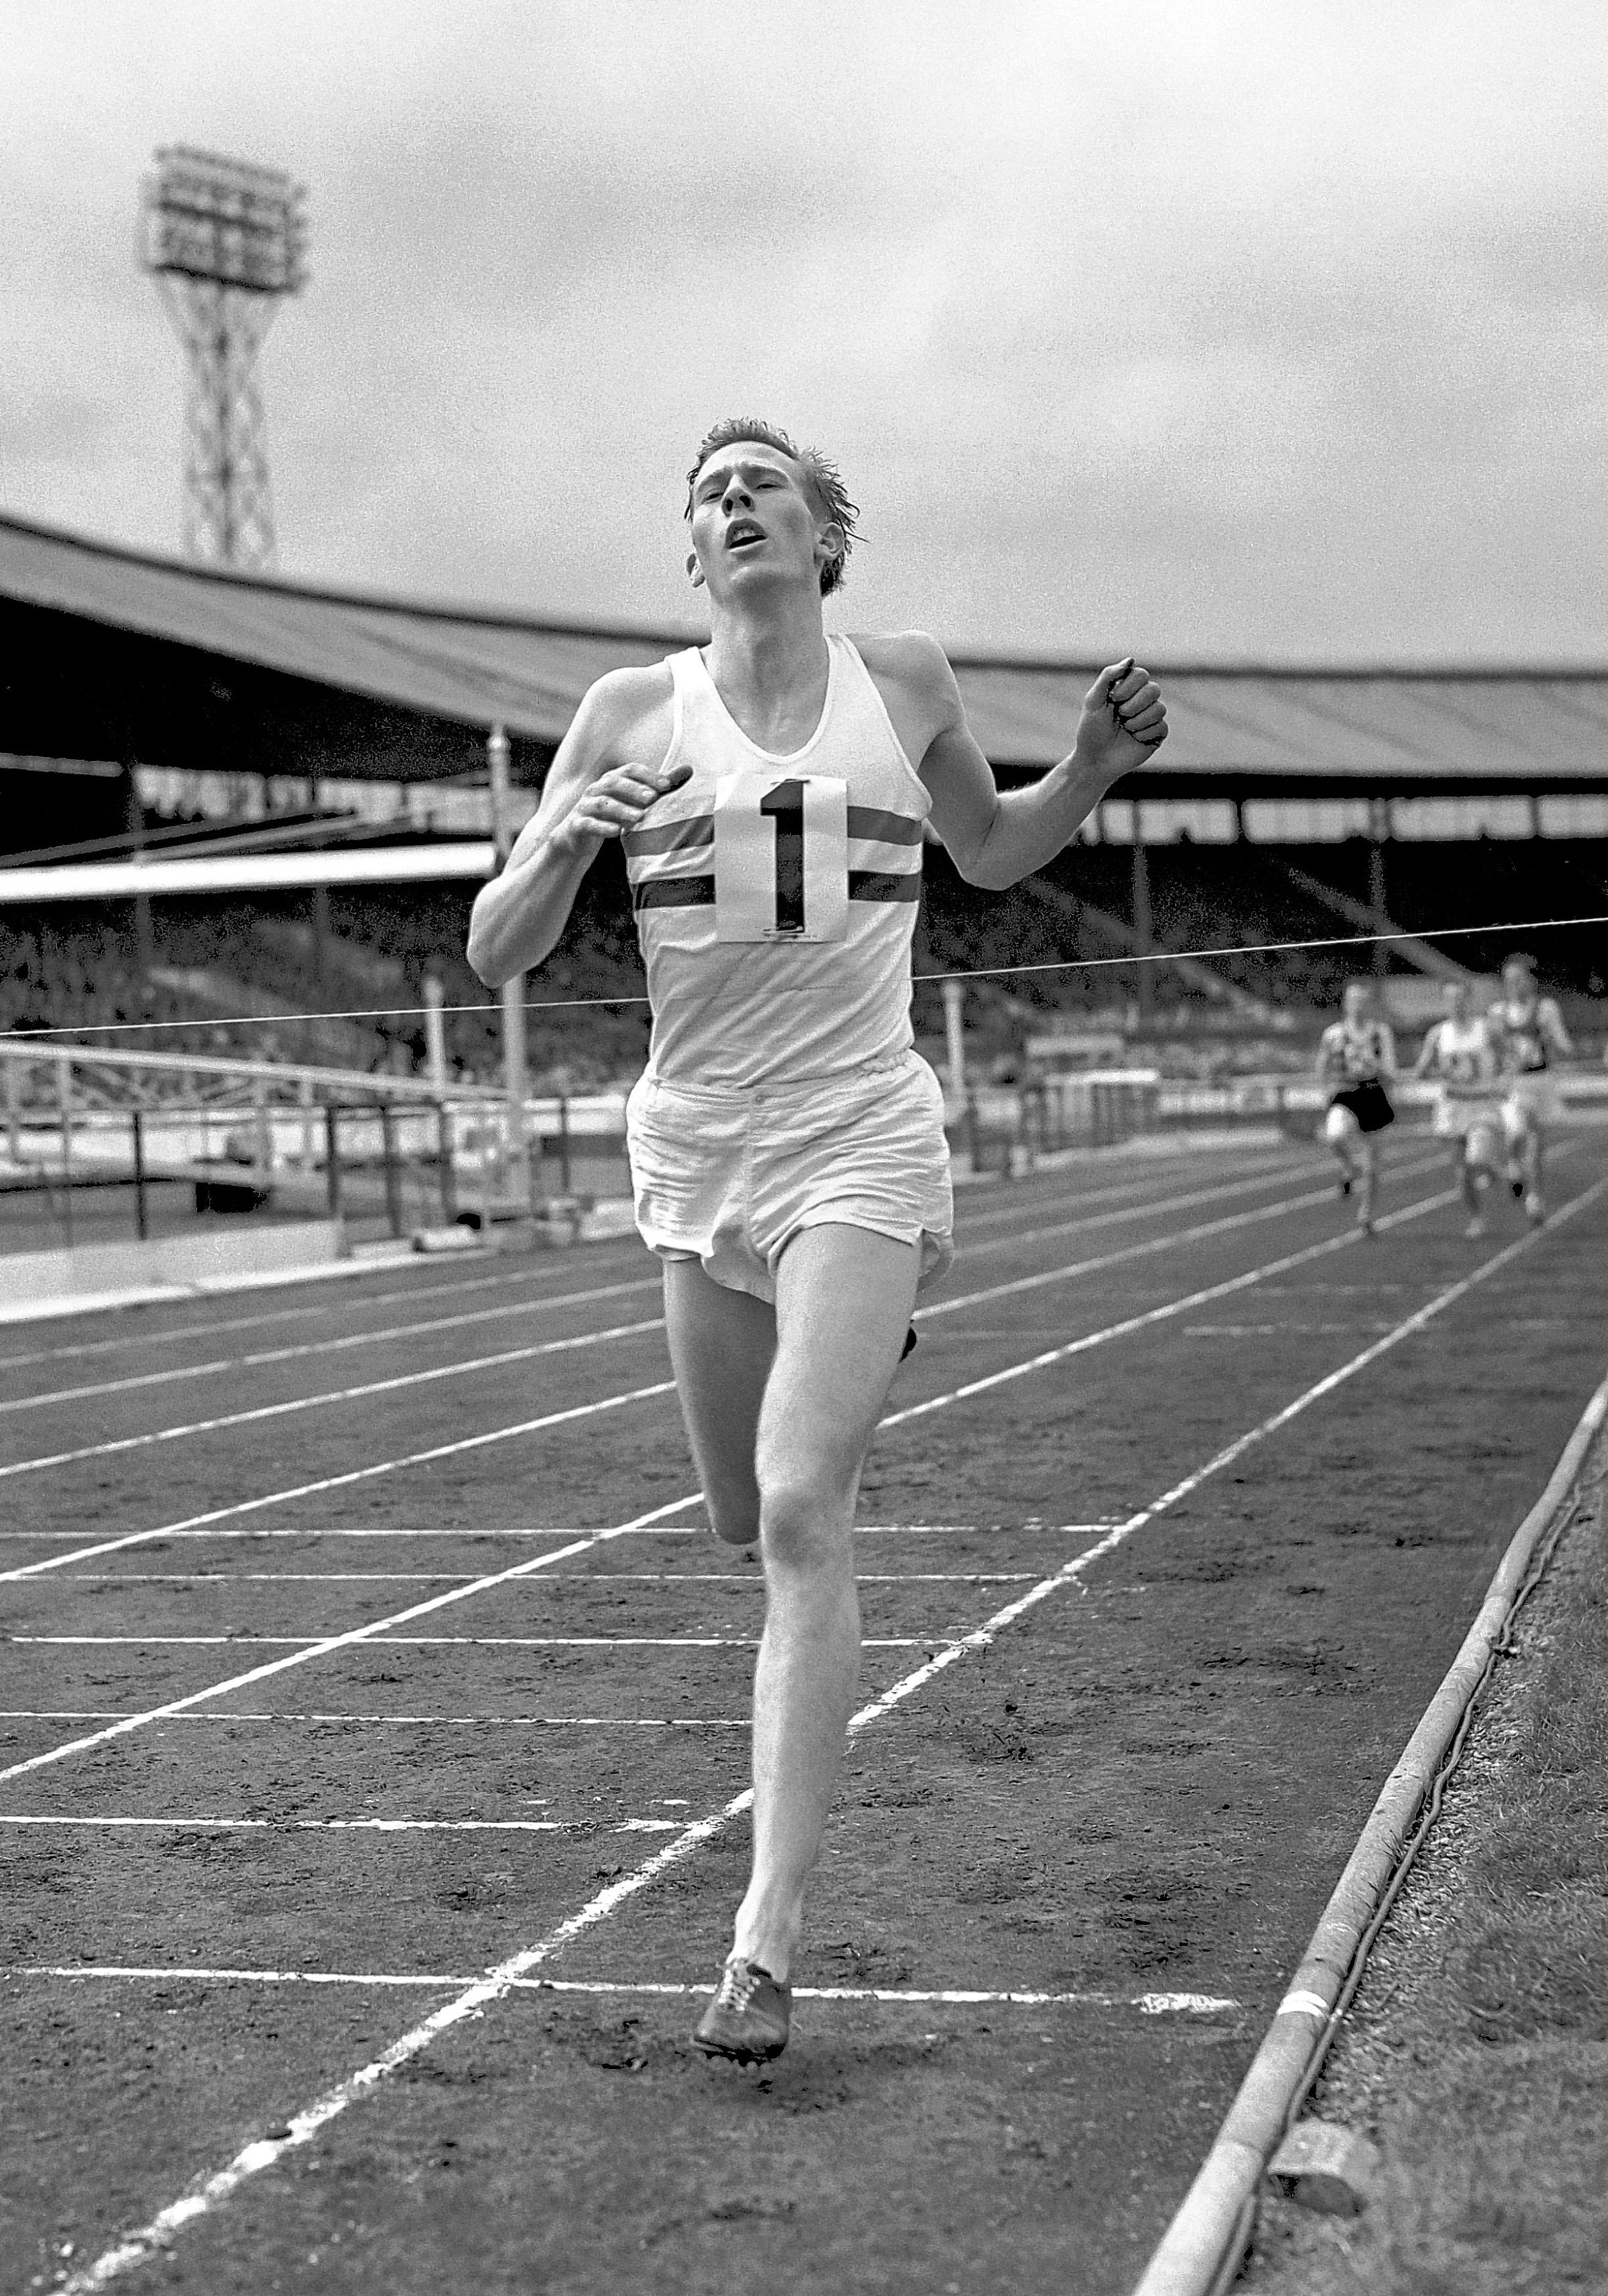 Roger Bannister breaks the four-minute mile for the first time